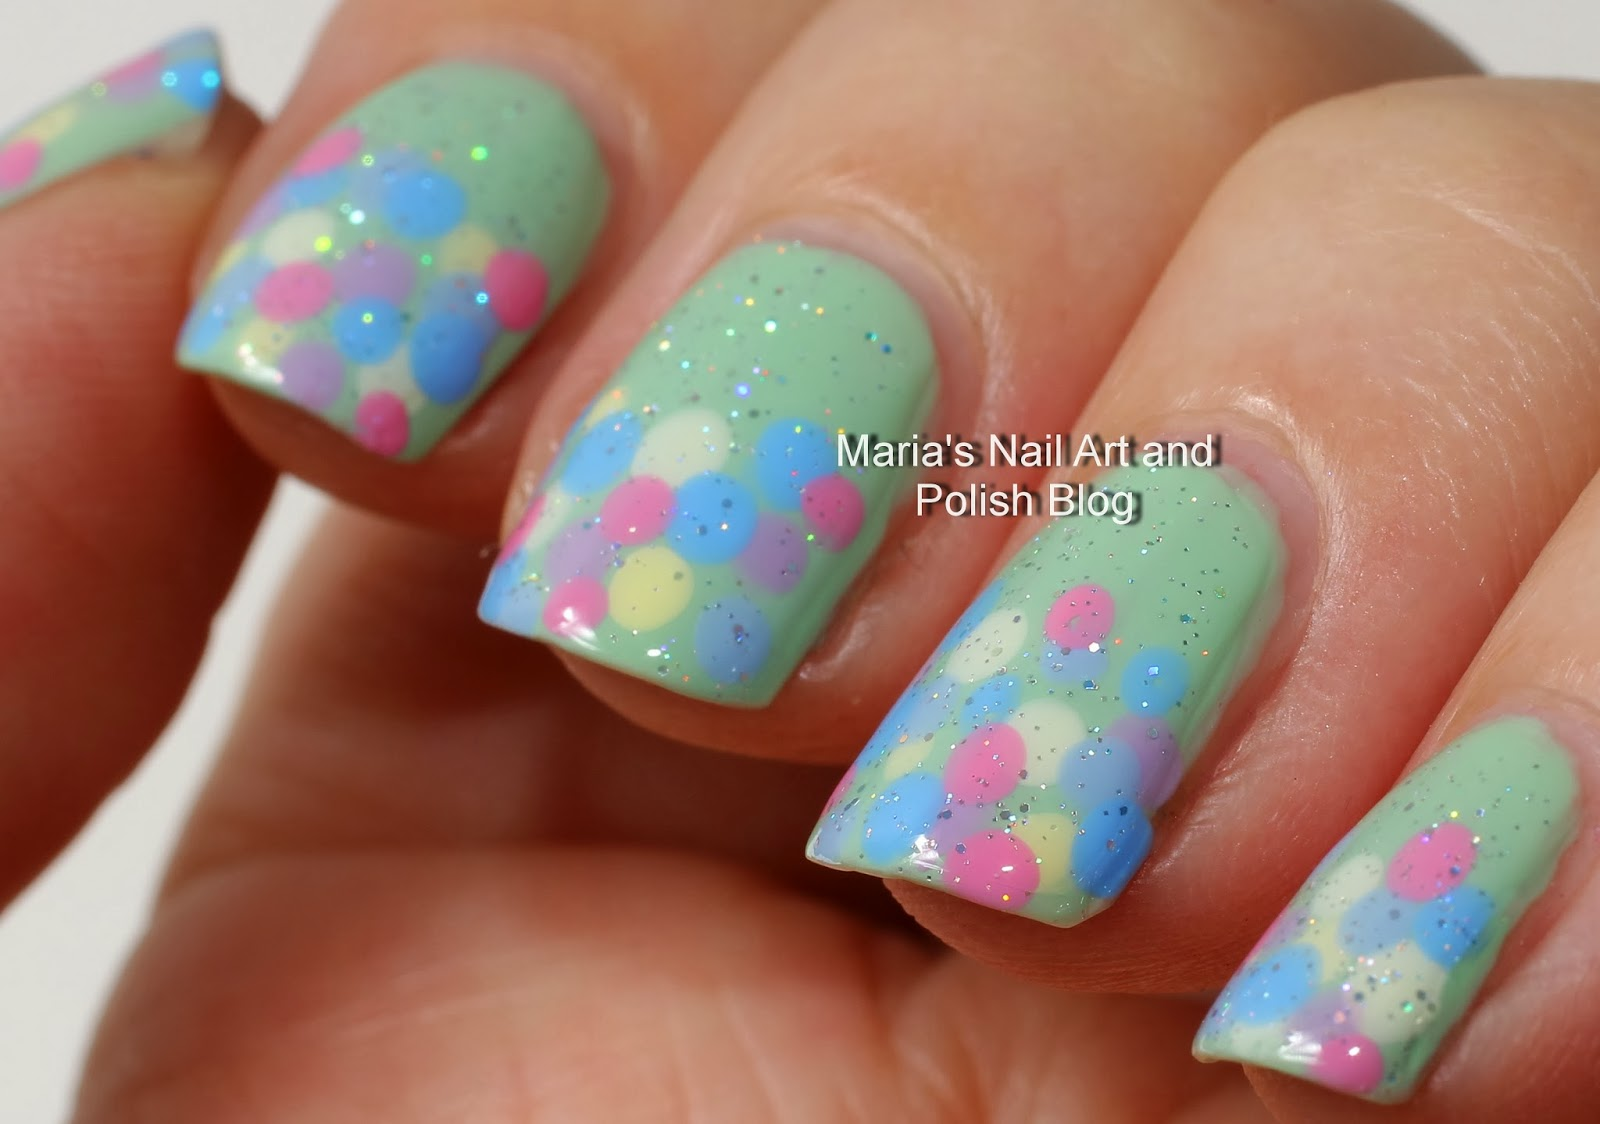 Marias Nail Art and Polish Blog: Peppermint Patti with dots